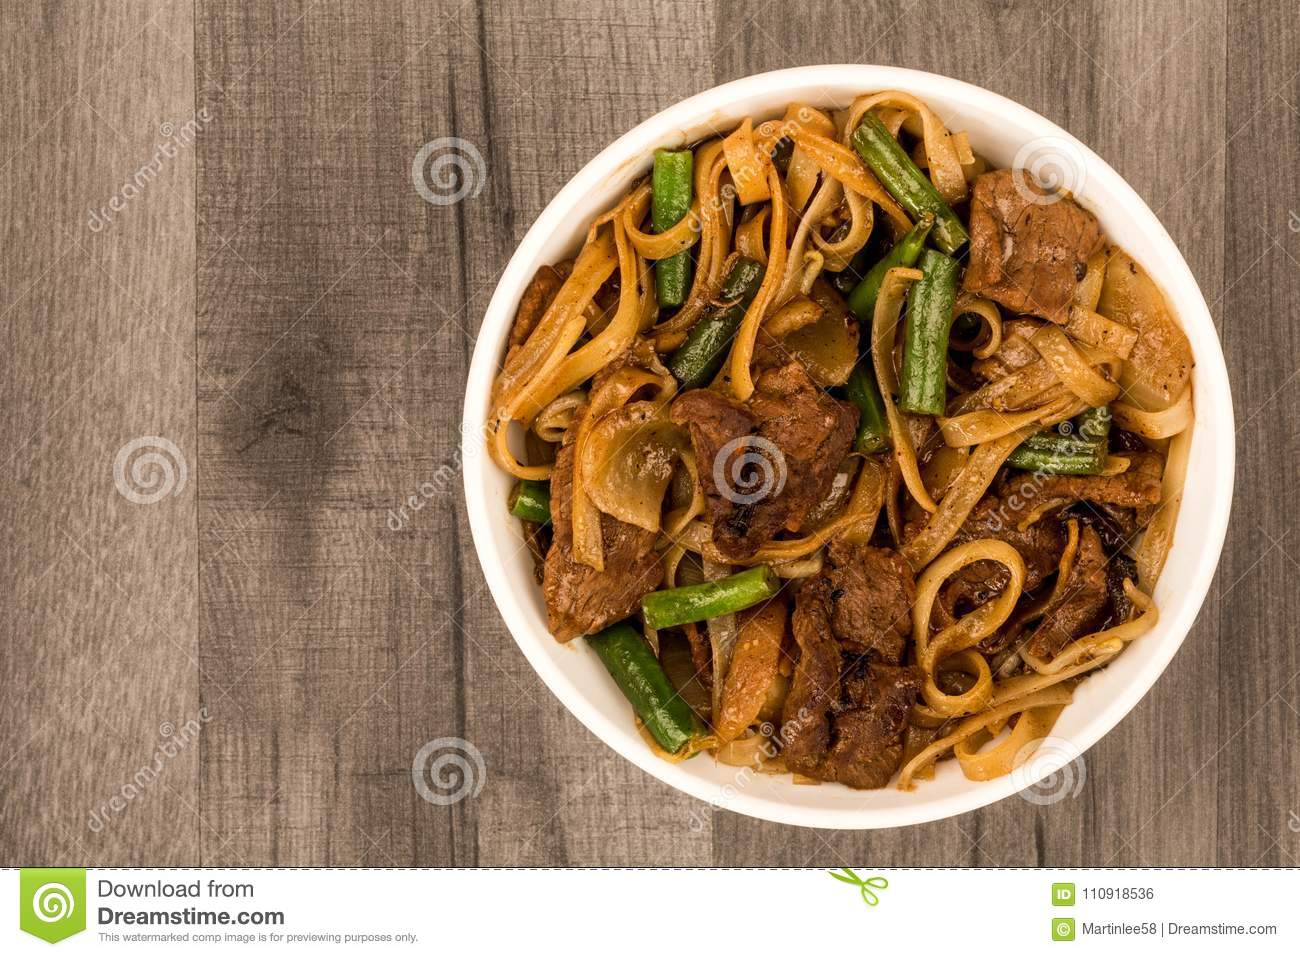 Estilo chino Fried Beef And Mushrooms Noodles